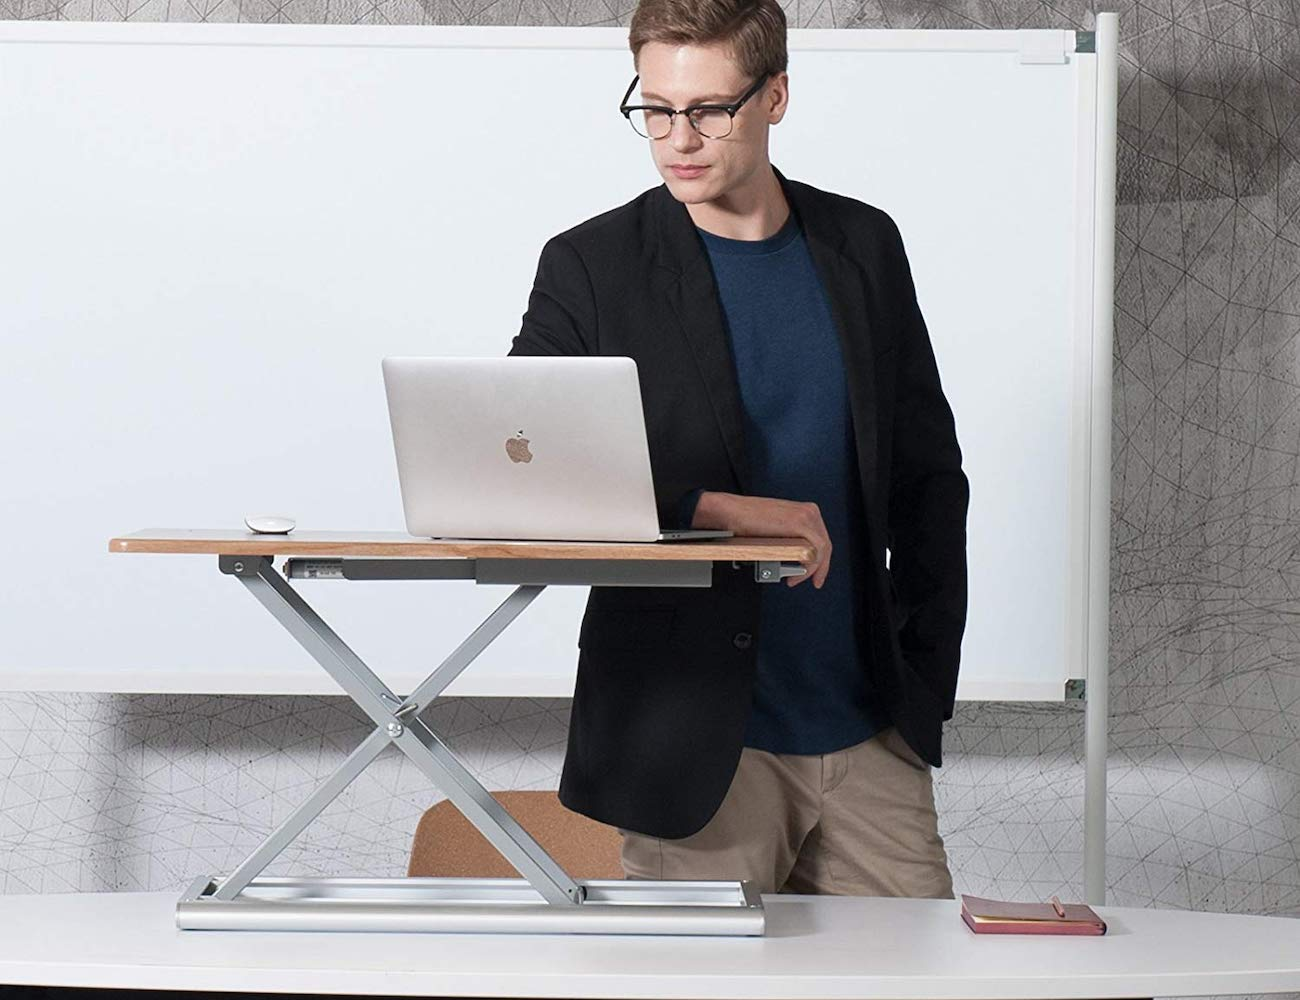 UPERGO Standing Desk Converter lets you quickly change from sitting to standing